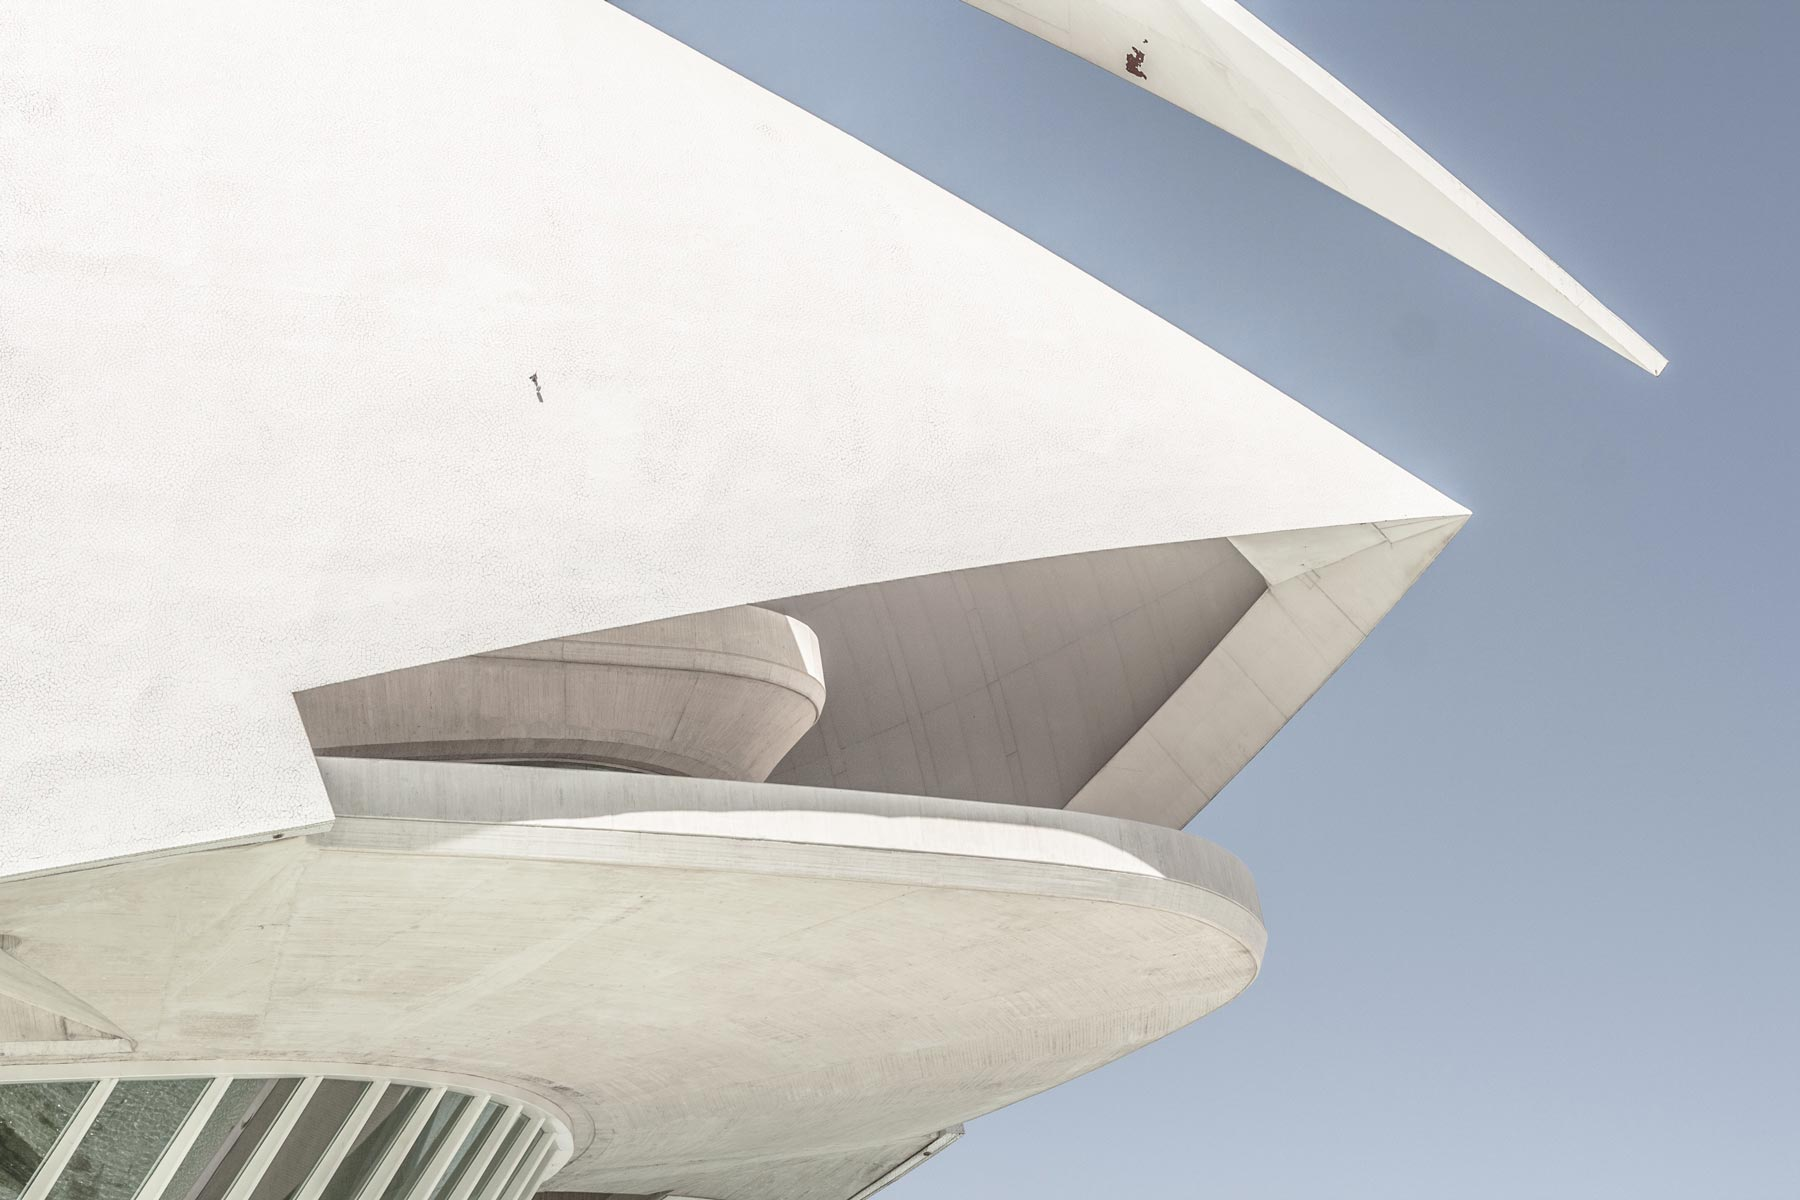 Close-up of the corner of a white, geometric building with both sharp points and round corners.